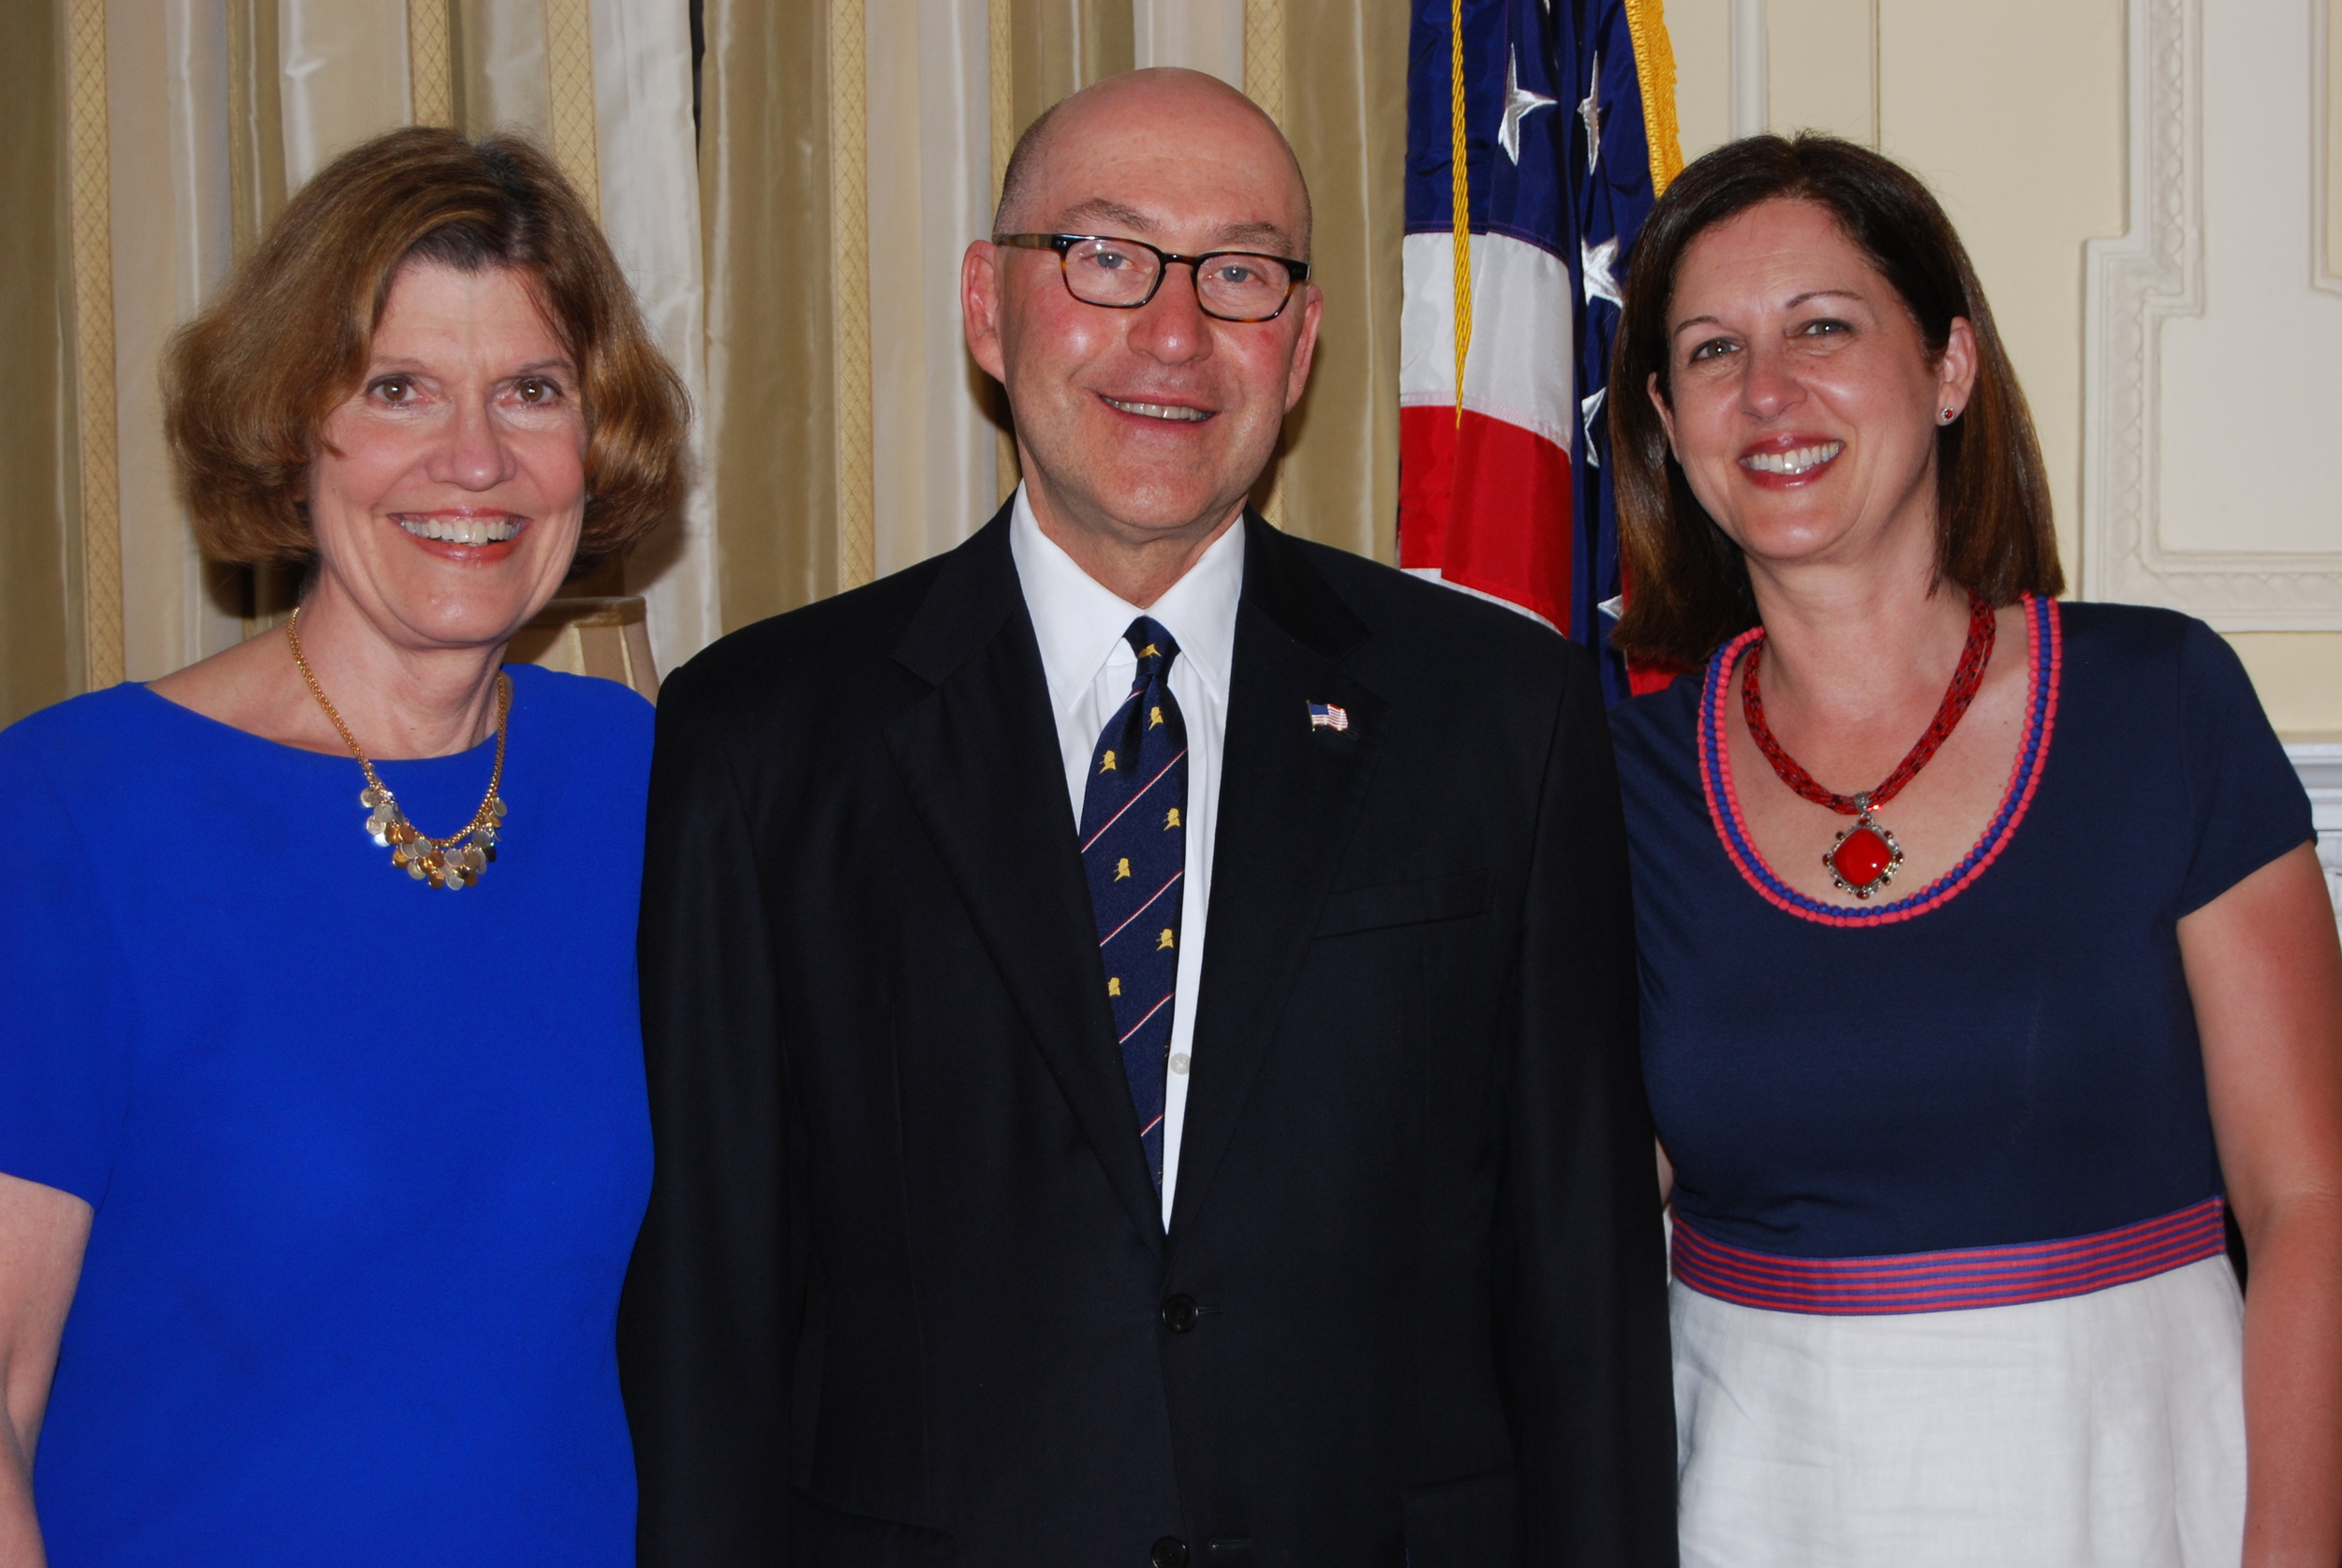 Lynne Olson with Ambassador David Jacobson and Mrs. Julie Jacobson - II